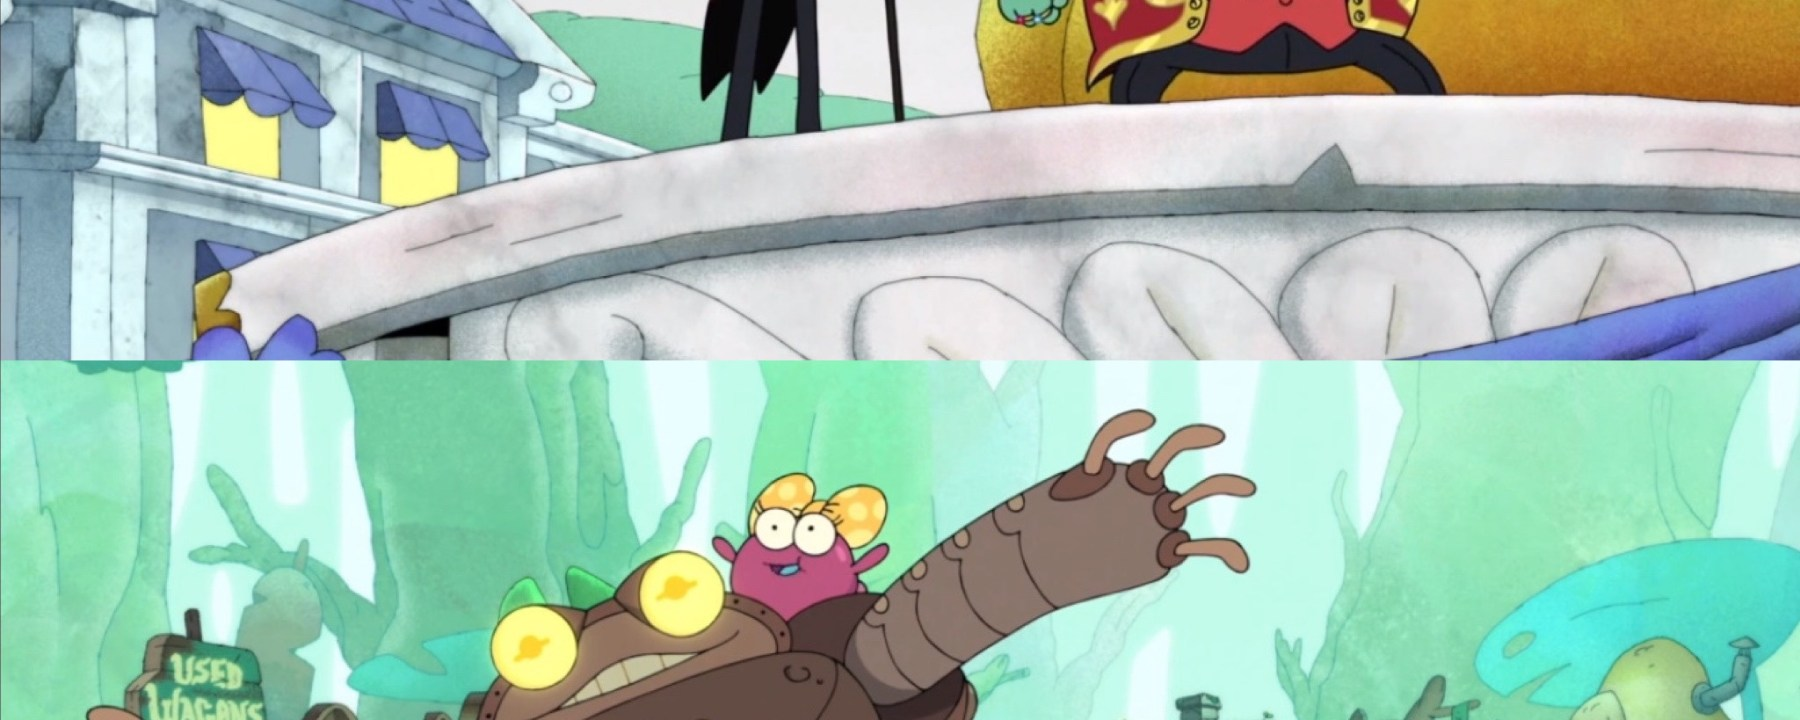 Amphibia Season 2 Episode 15-New Wartwood and Friend or Frobo